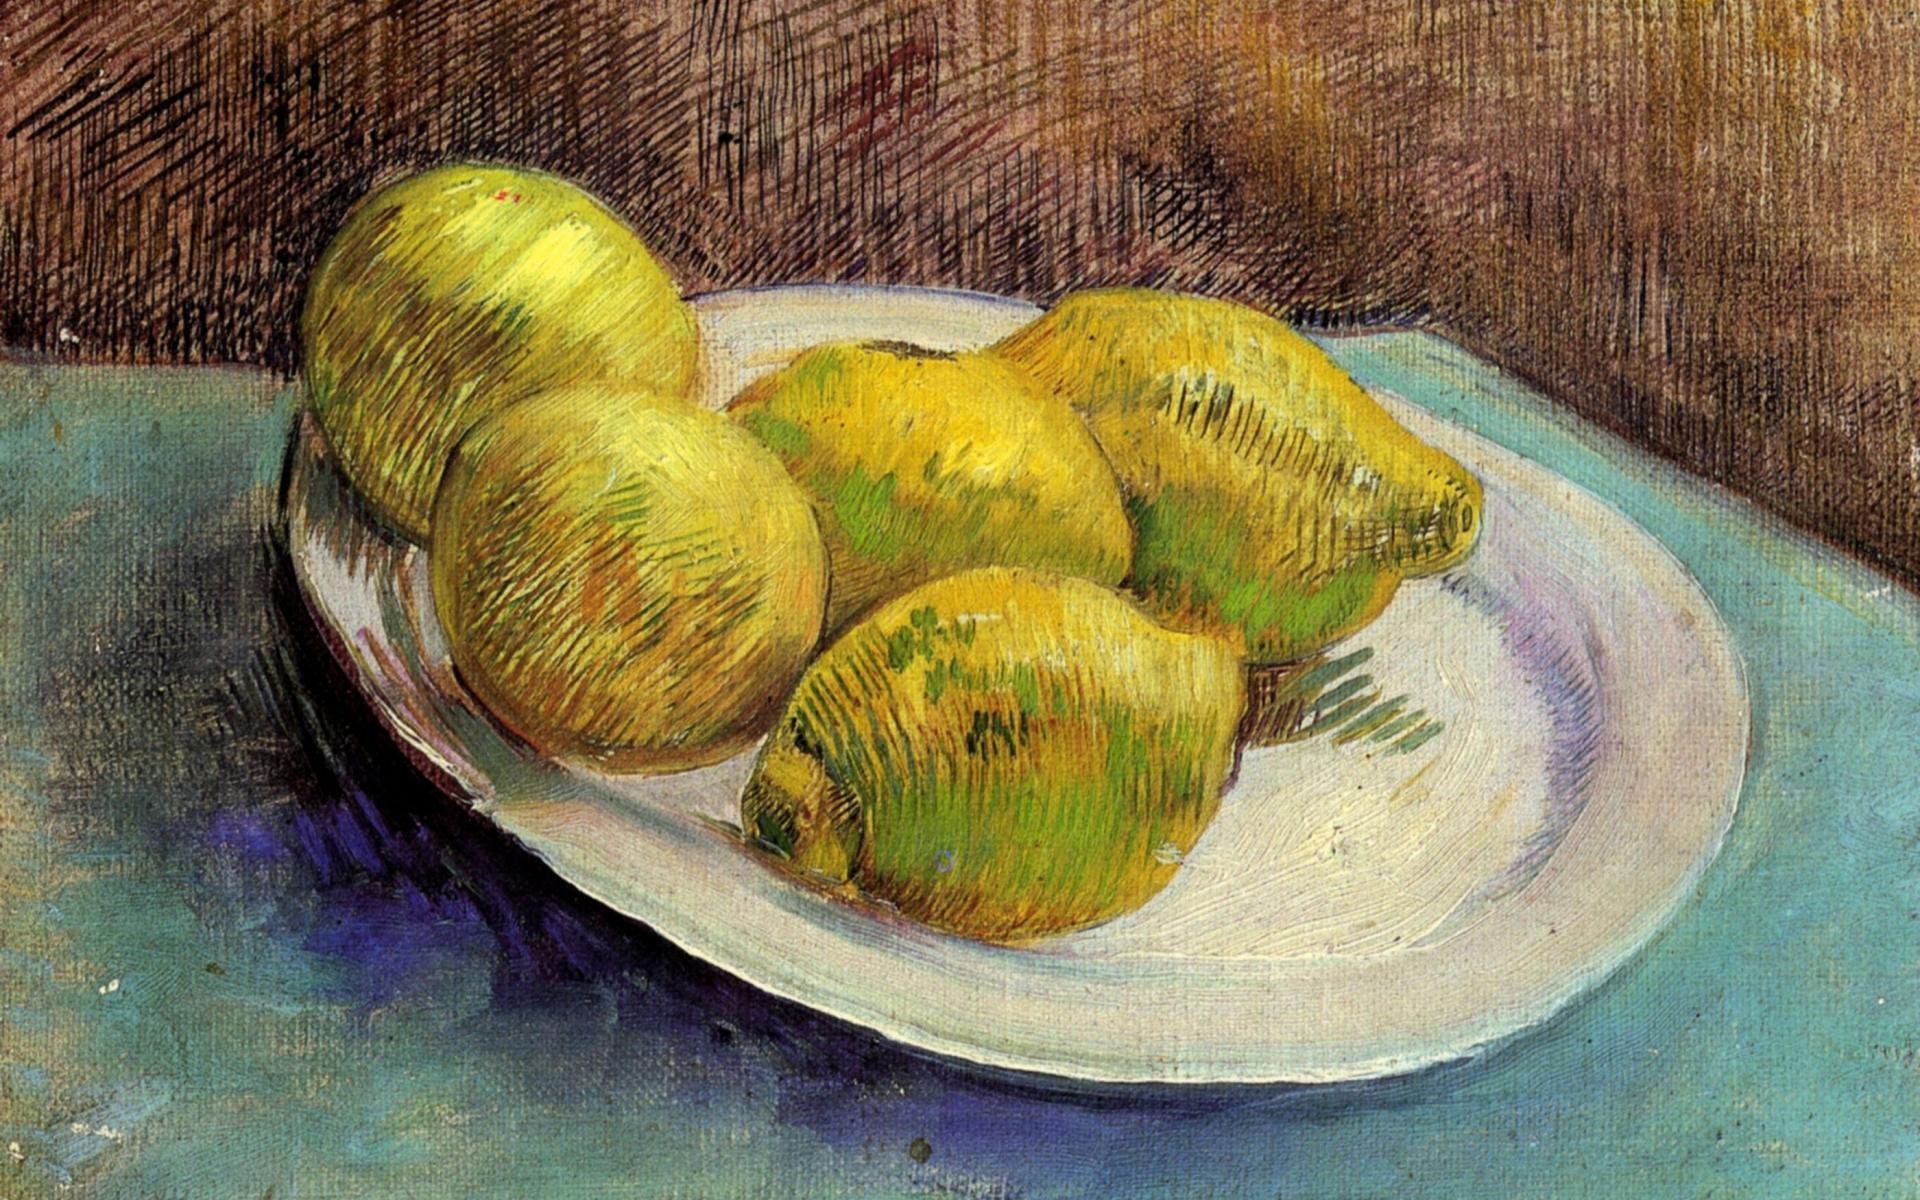 Vincent Van Gogh Wallpaper, Still Life With Lemons On A Plate